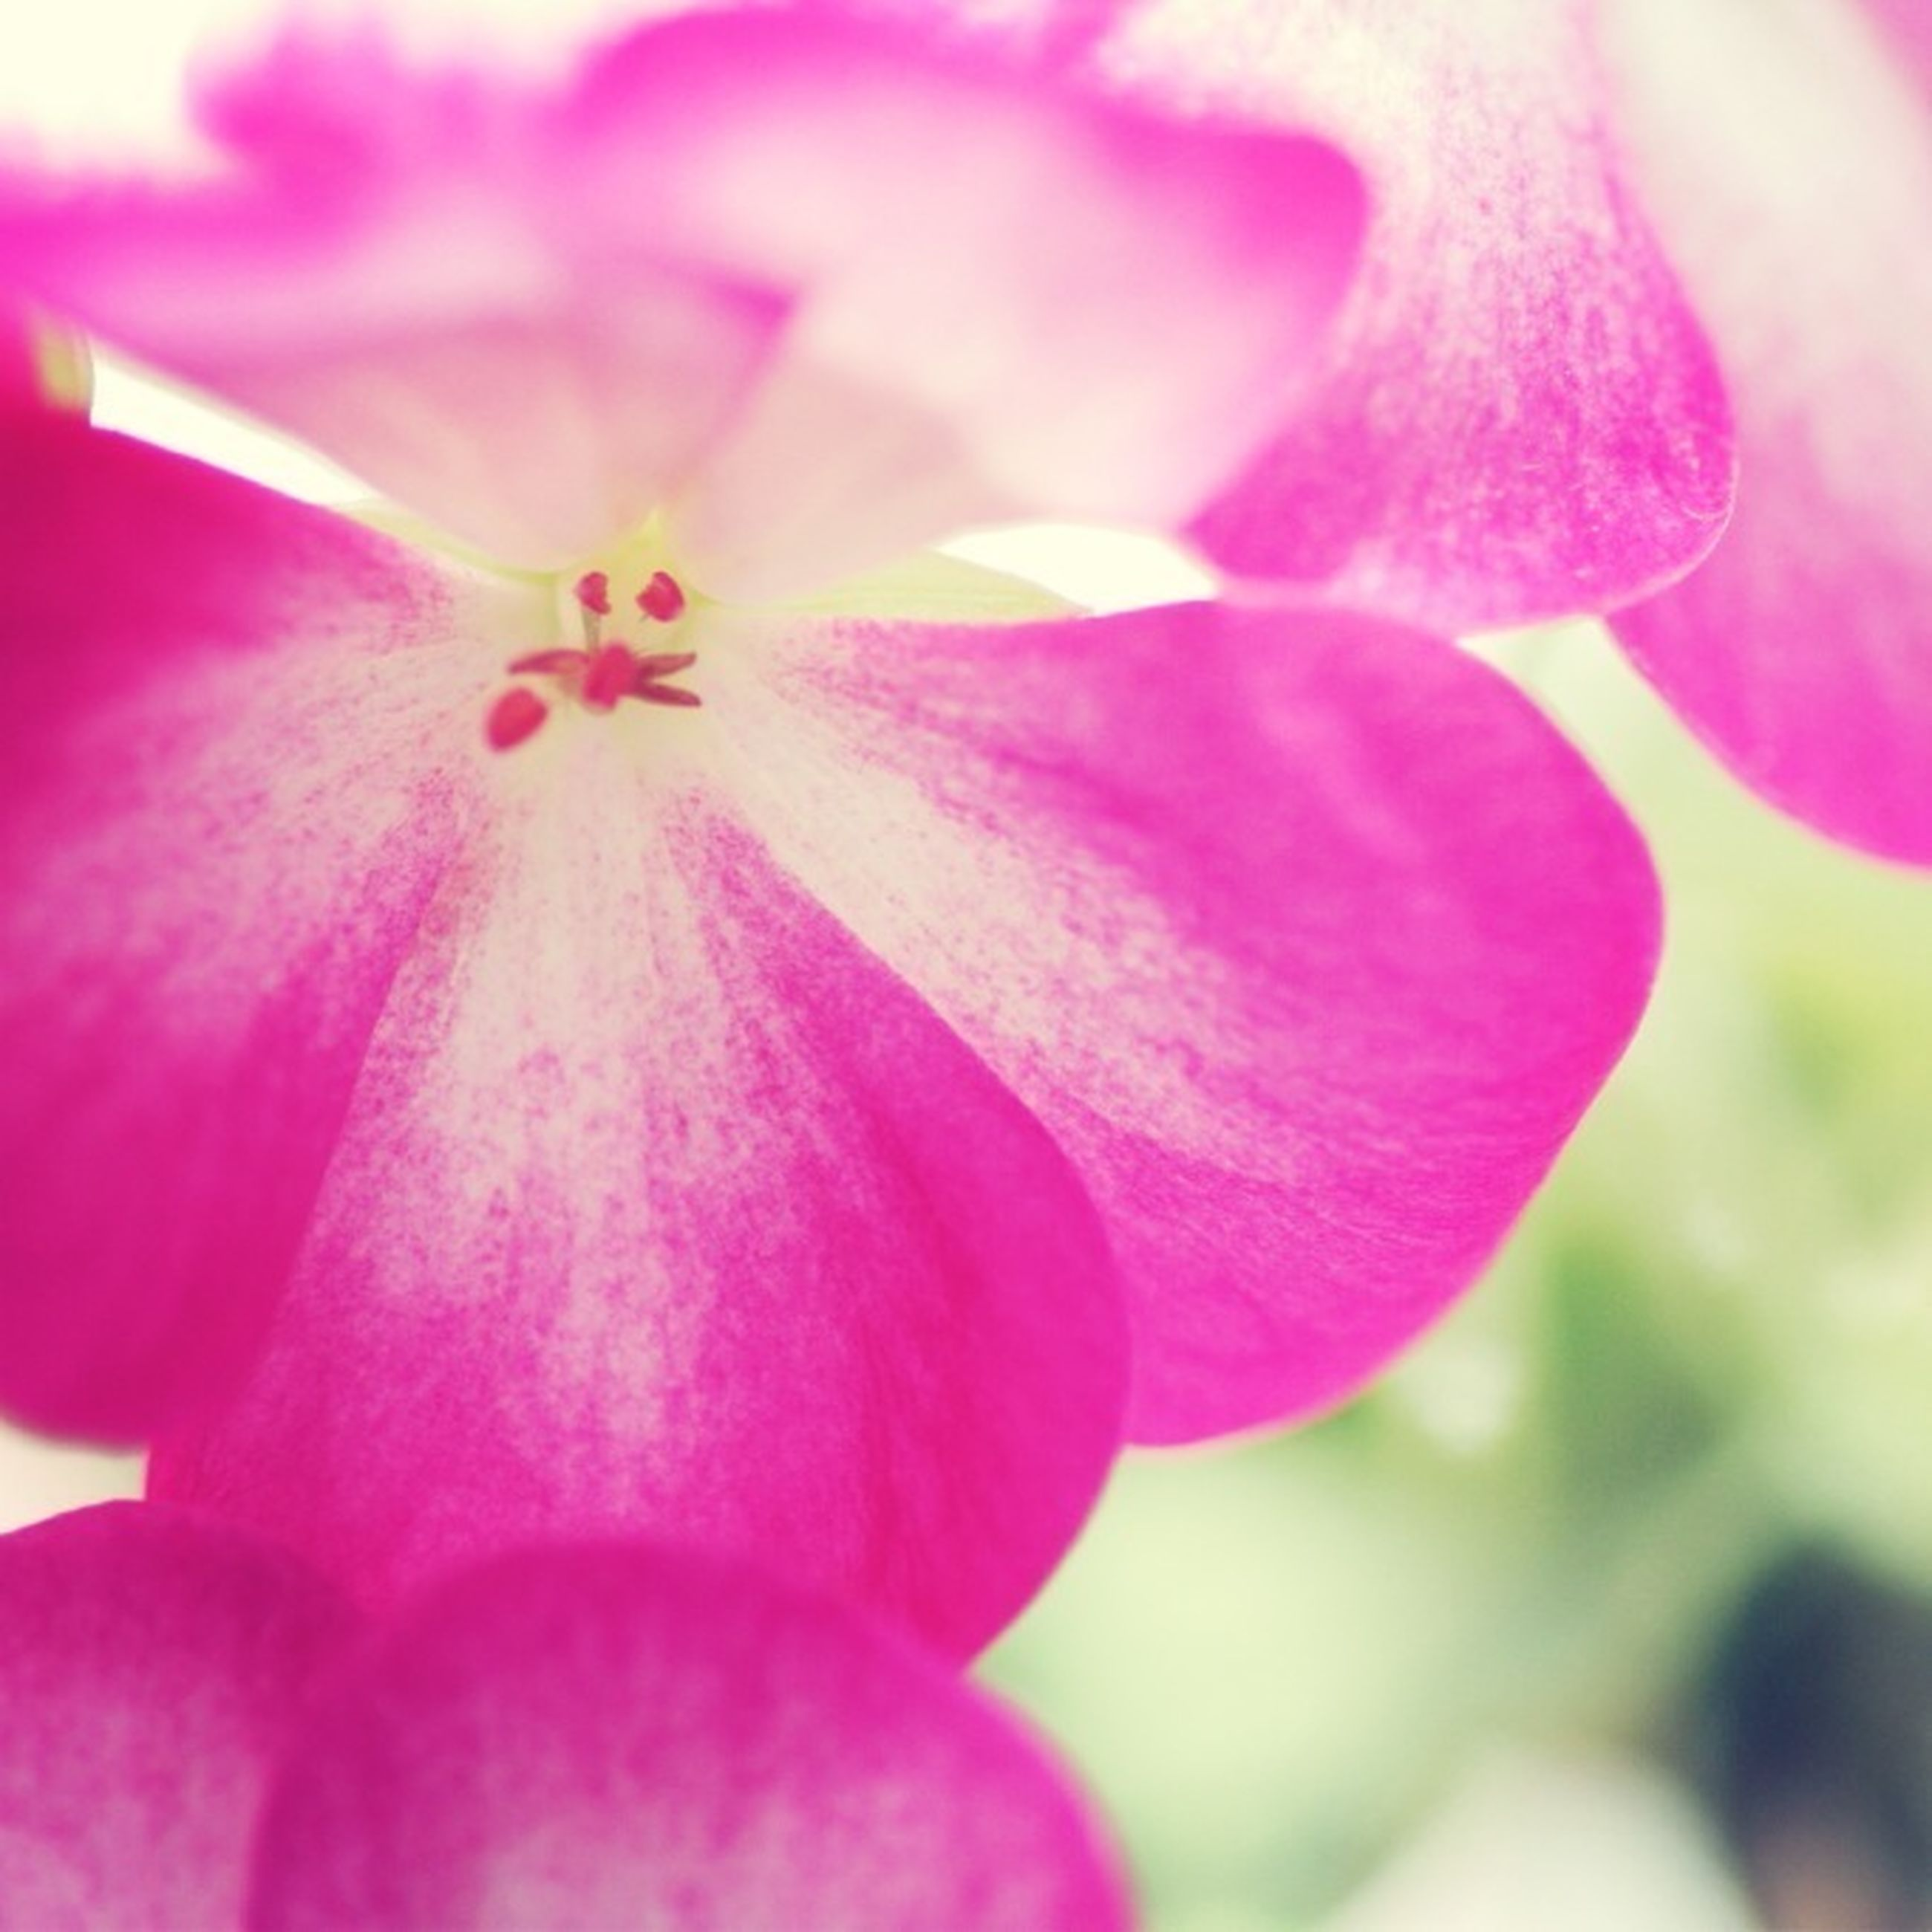 flower, petal, freshness, flower head, pink color, fragility, close-up, beauty in nature, growth, stamen, nature, single flower, blooming, pollen, focus on foreground, pink, plant, in bloom, selective focus, macro